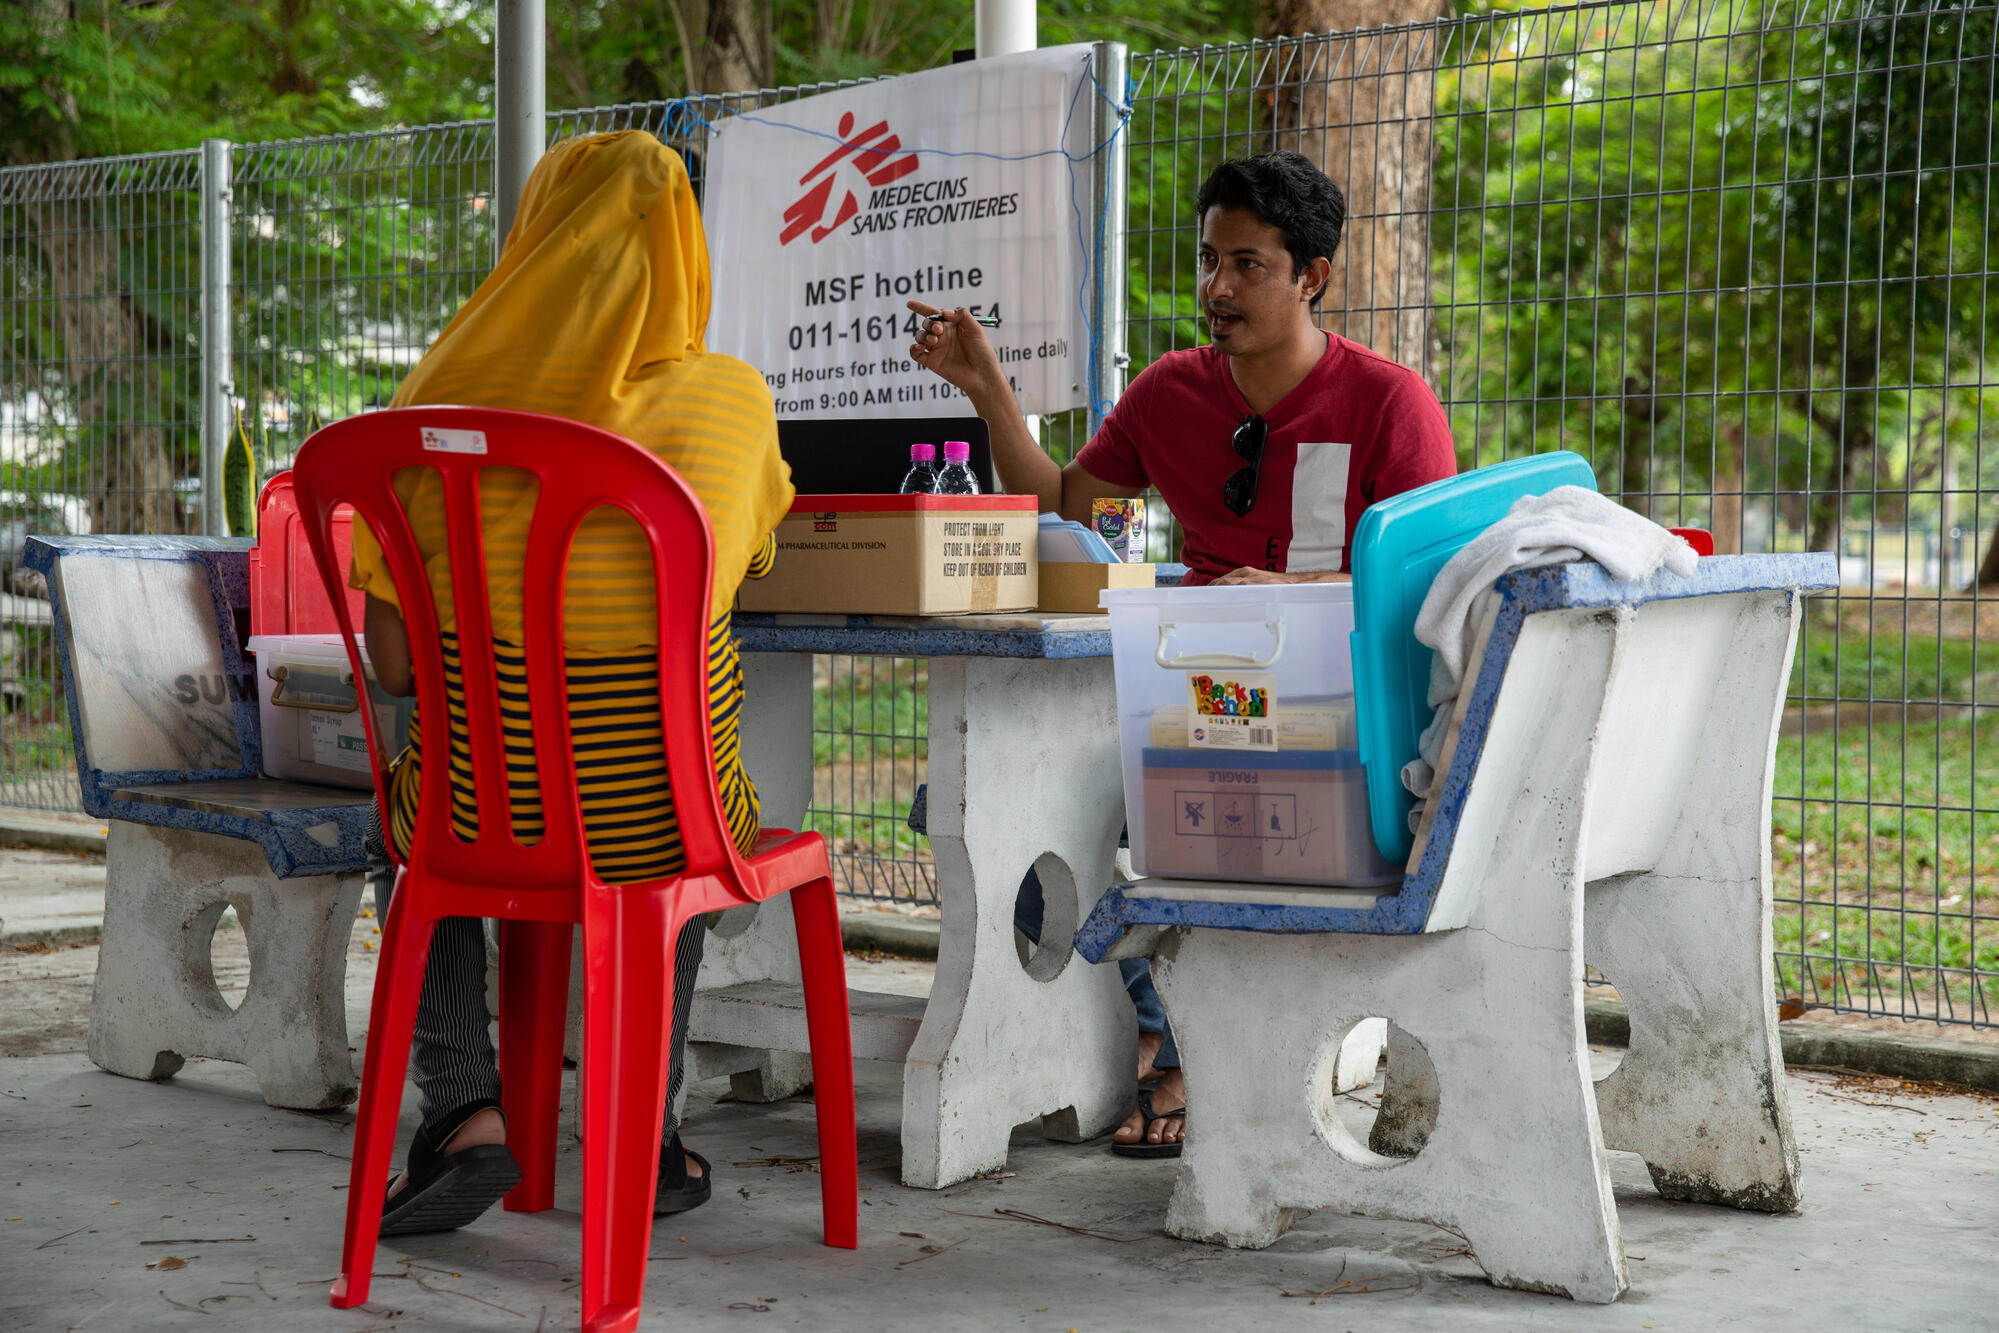 An MSF staff member registers a patient outside the MSF mobile clinic in Bukit Gudung, Penang.